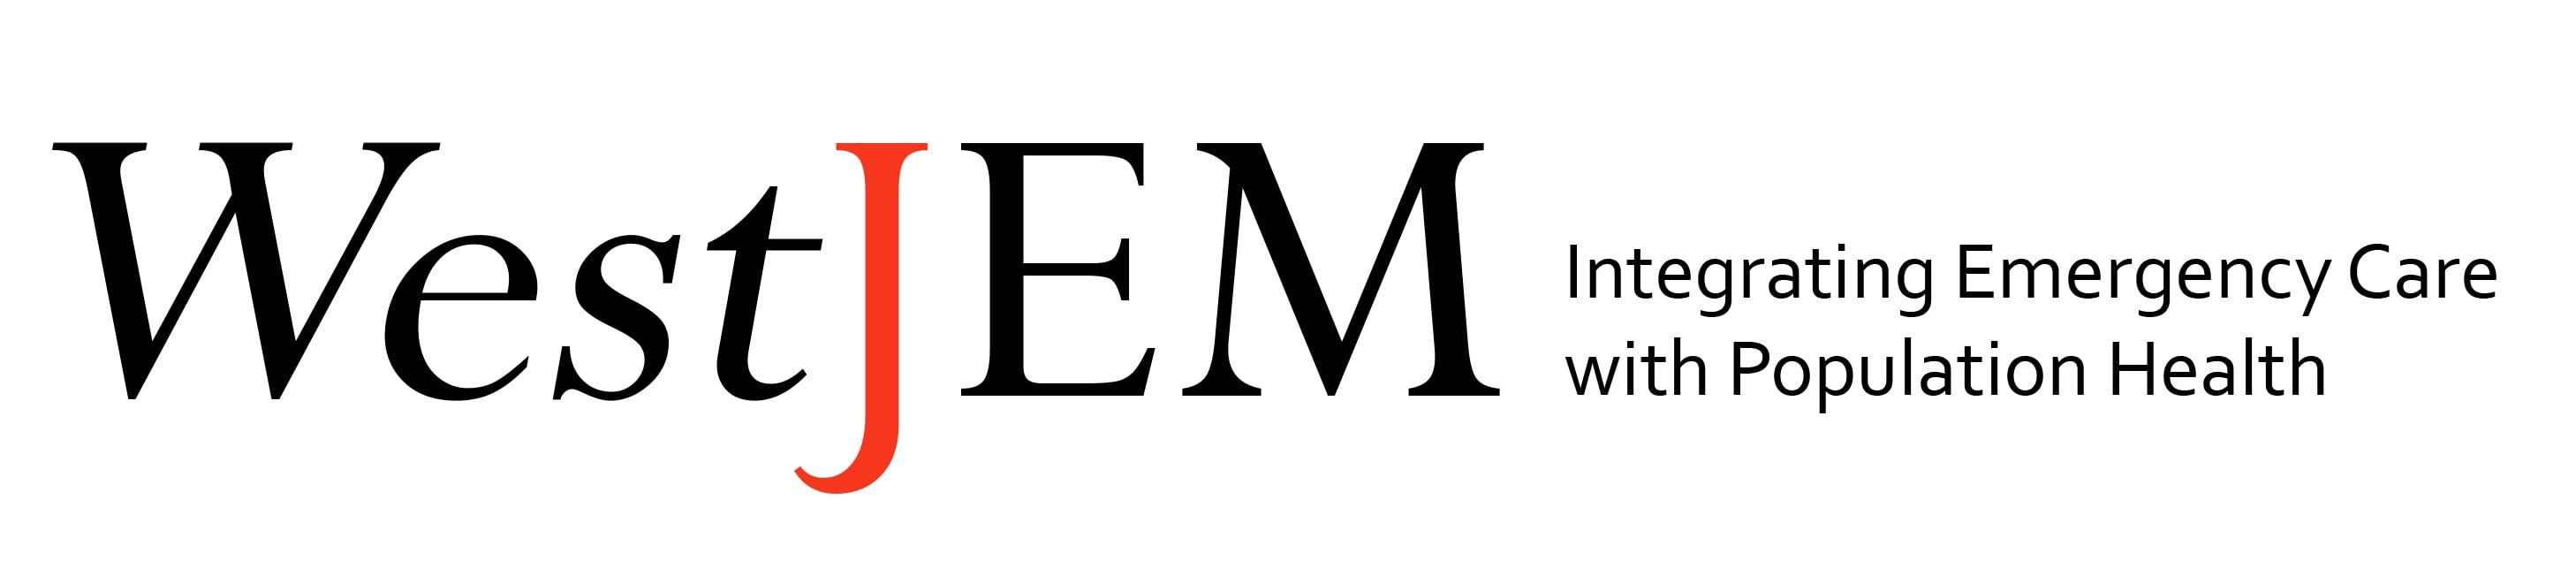 CDEM/CORD Special Issue in Educational Research and Practice Submission Guidelines - The Western Journal of Emergency Medicine